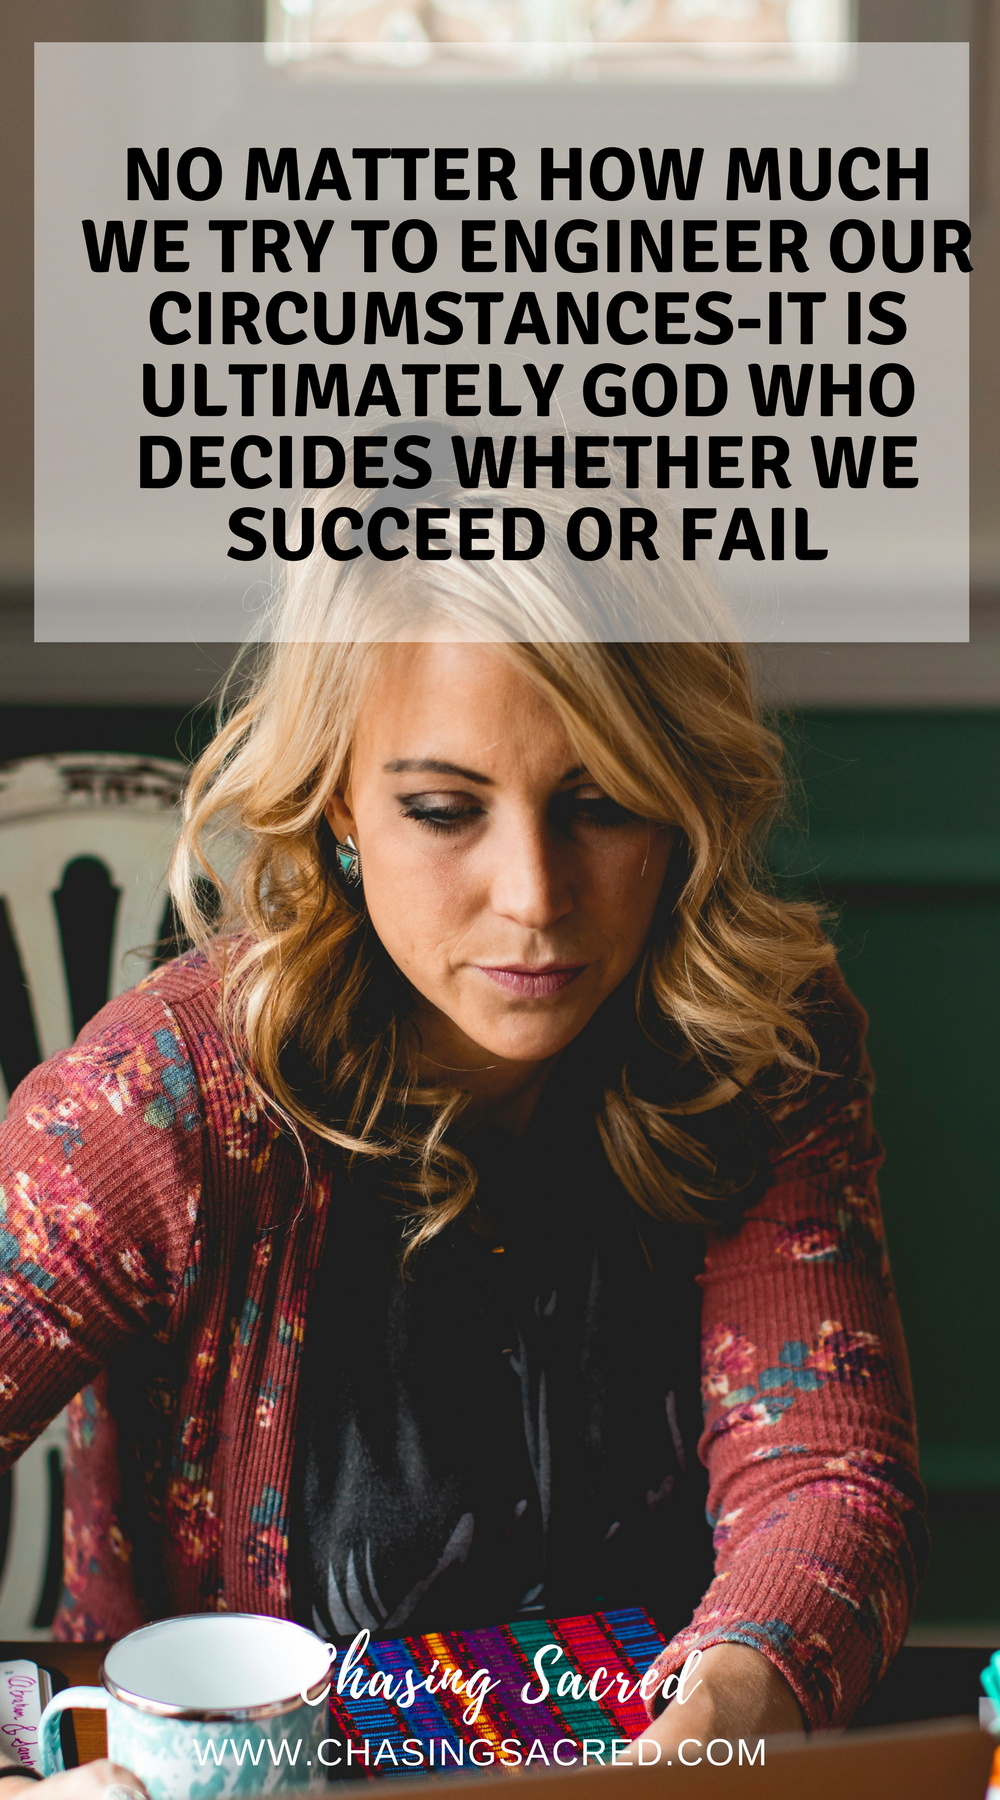 No matter how much we try to engineer our circumstances - it is ultimately God who decided whether we succeed or fail